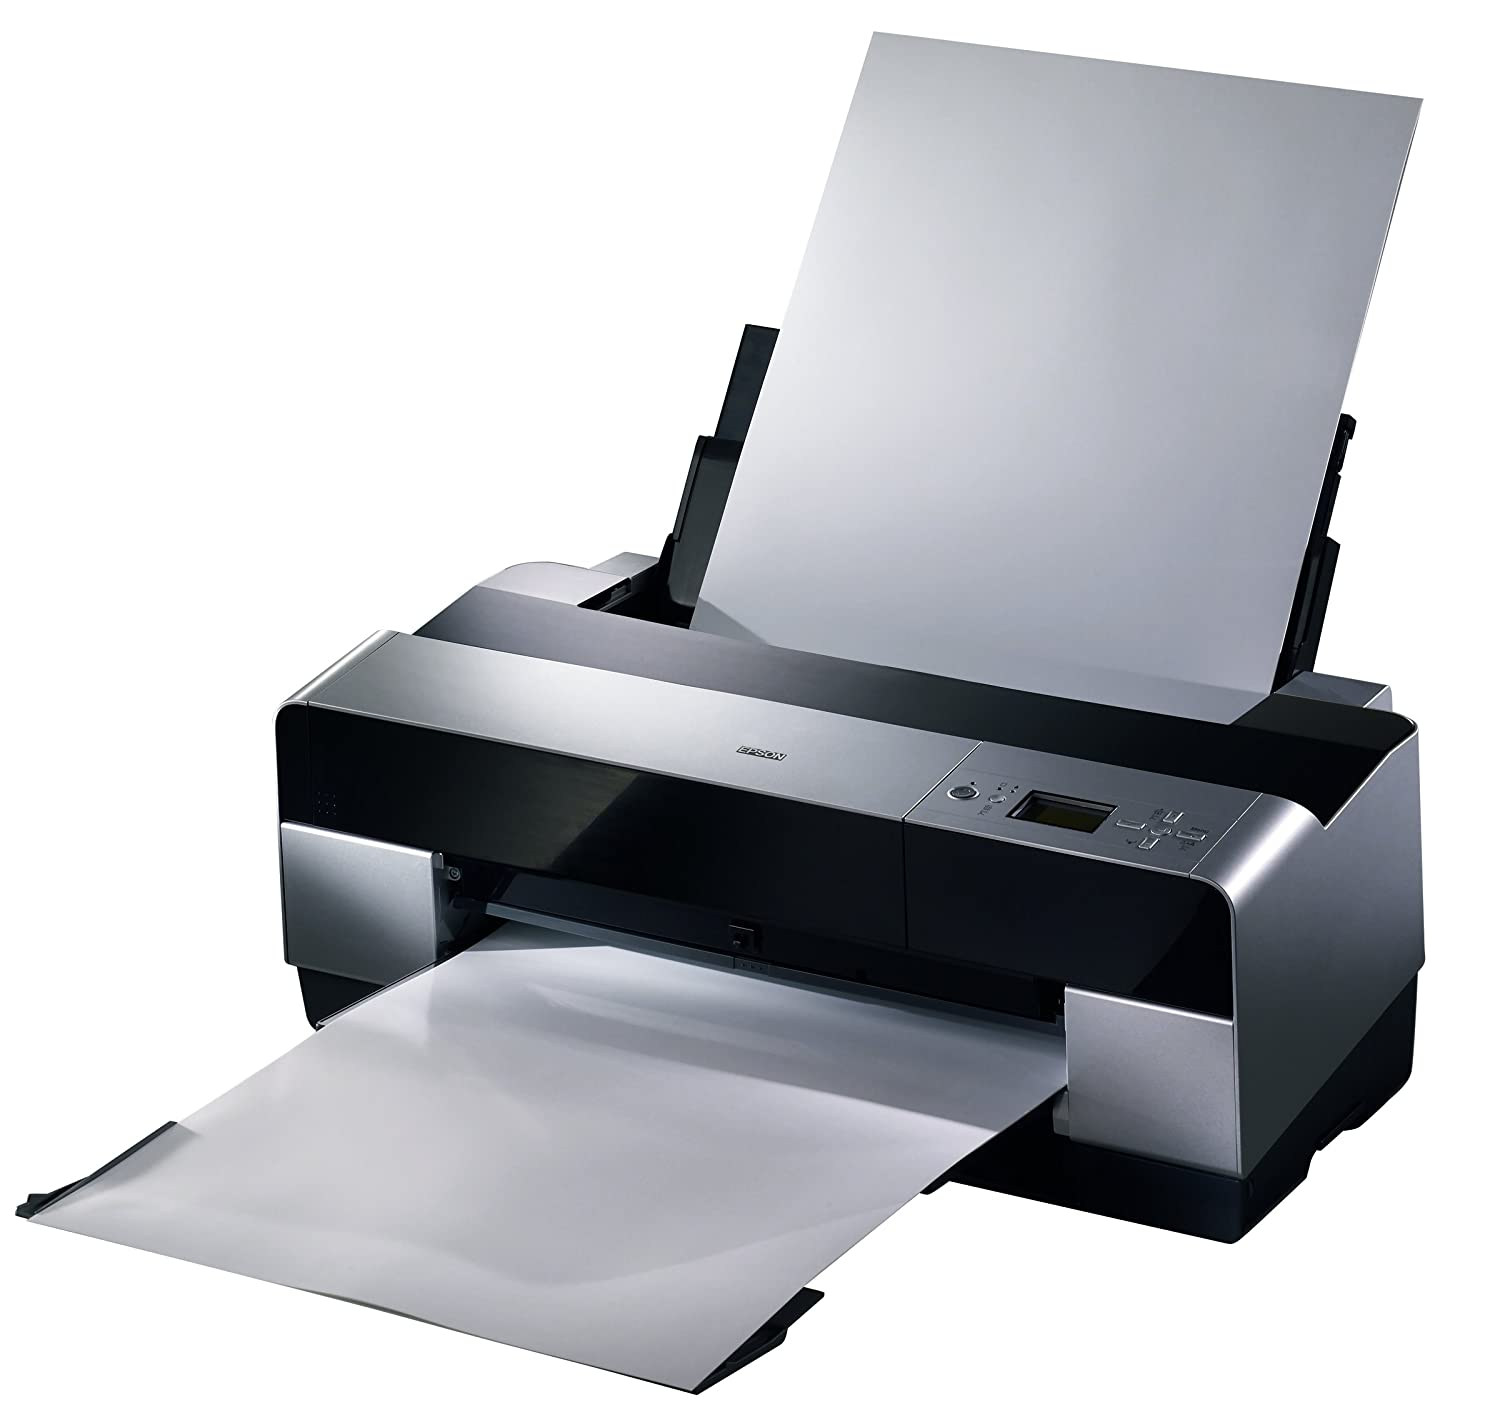 EPSON STYLUS PRO 3800 PRINTER DRIVER WINDOWS